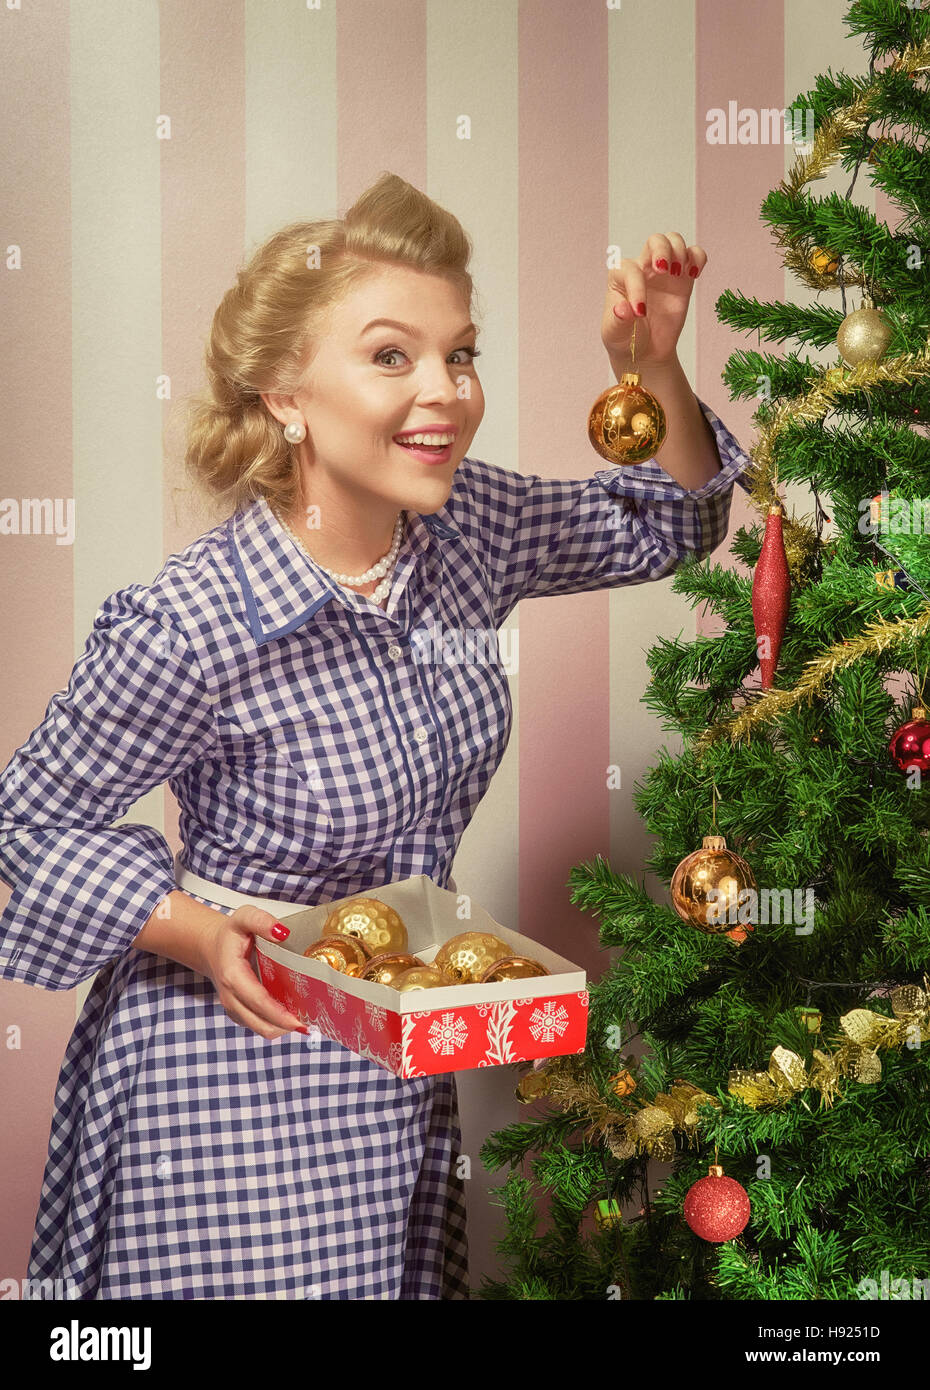 portrait of nice young woman hanging around christmas tree on x-mas  eve - Stock Image